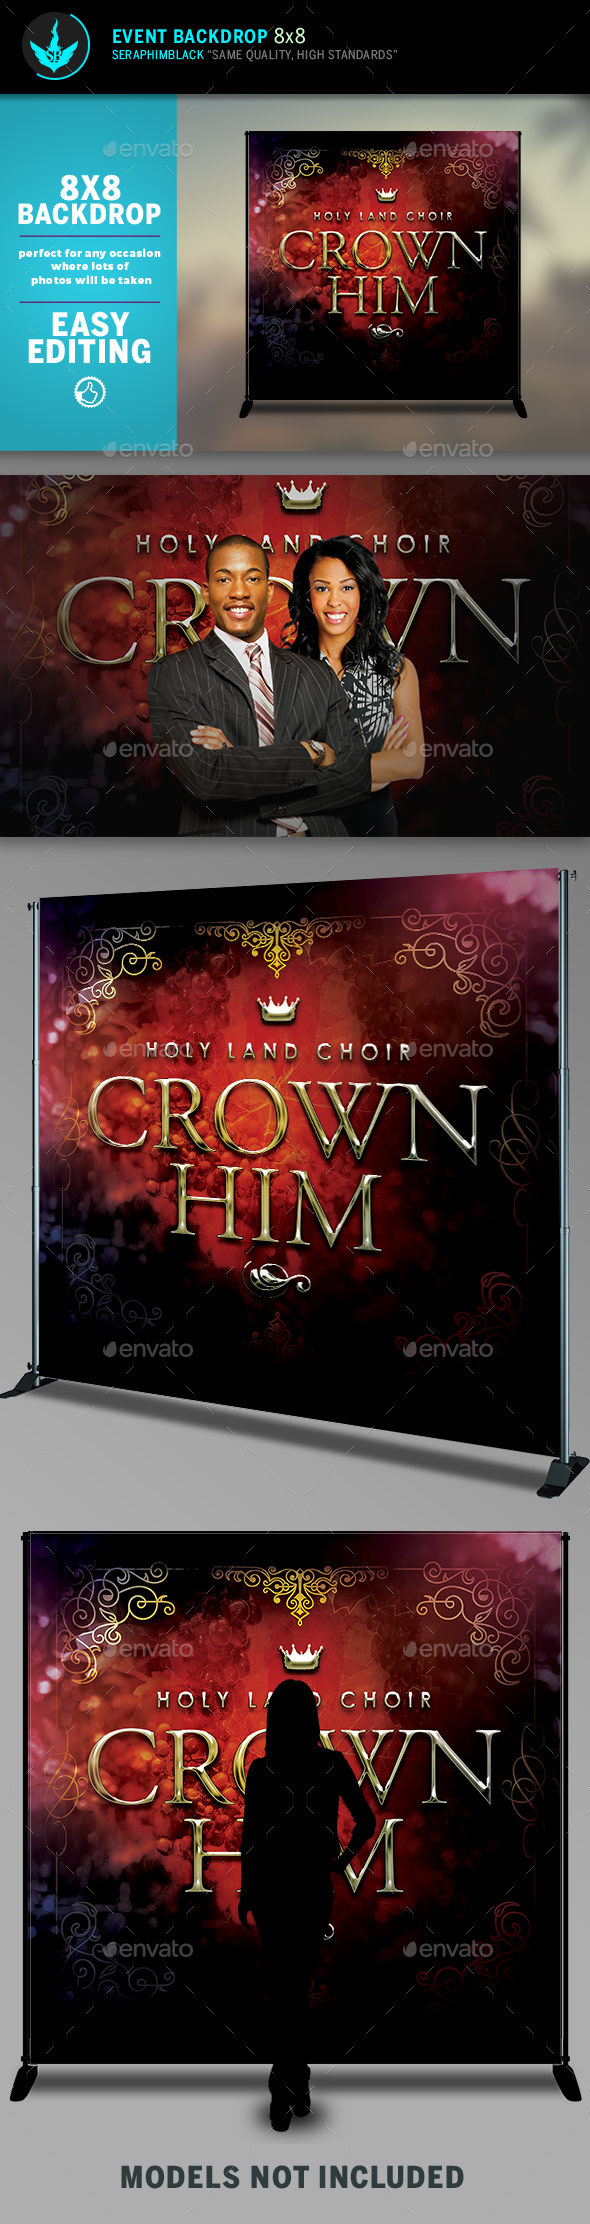 Crown Him 8x8 Event Backdrop Template - Signage Print Templates